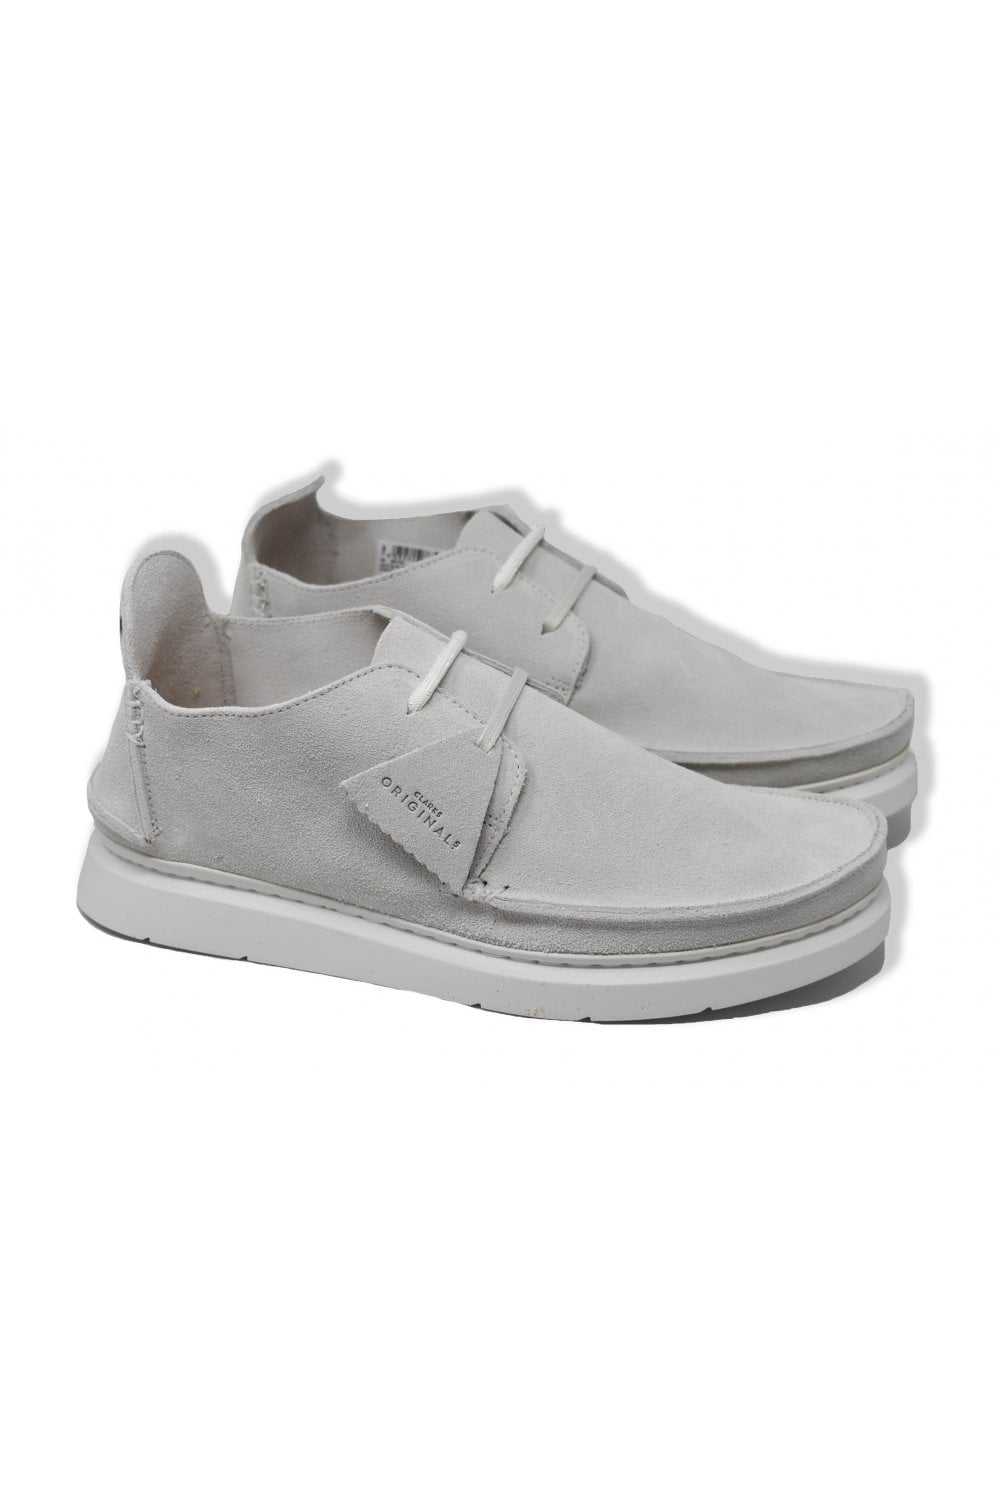 san francisco 413dd 1f4e2 Seven Suede Shoes (White)